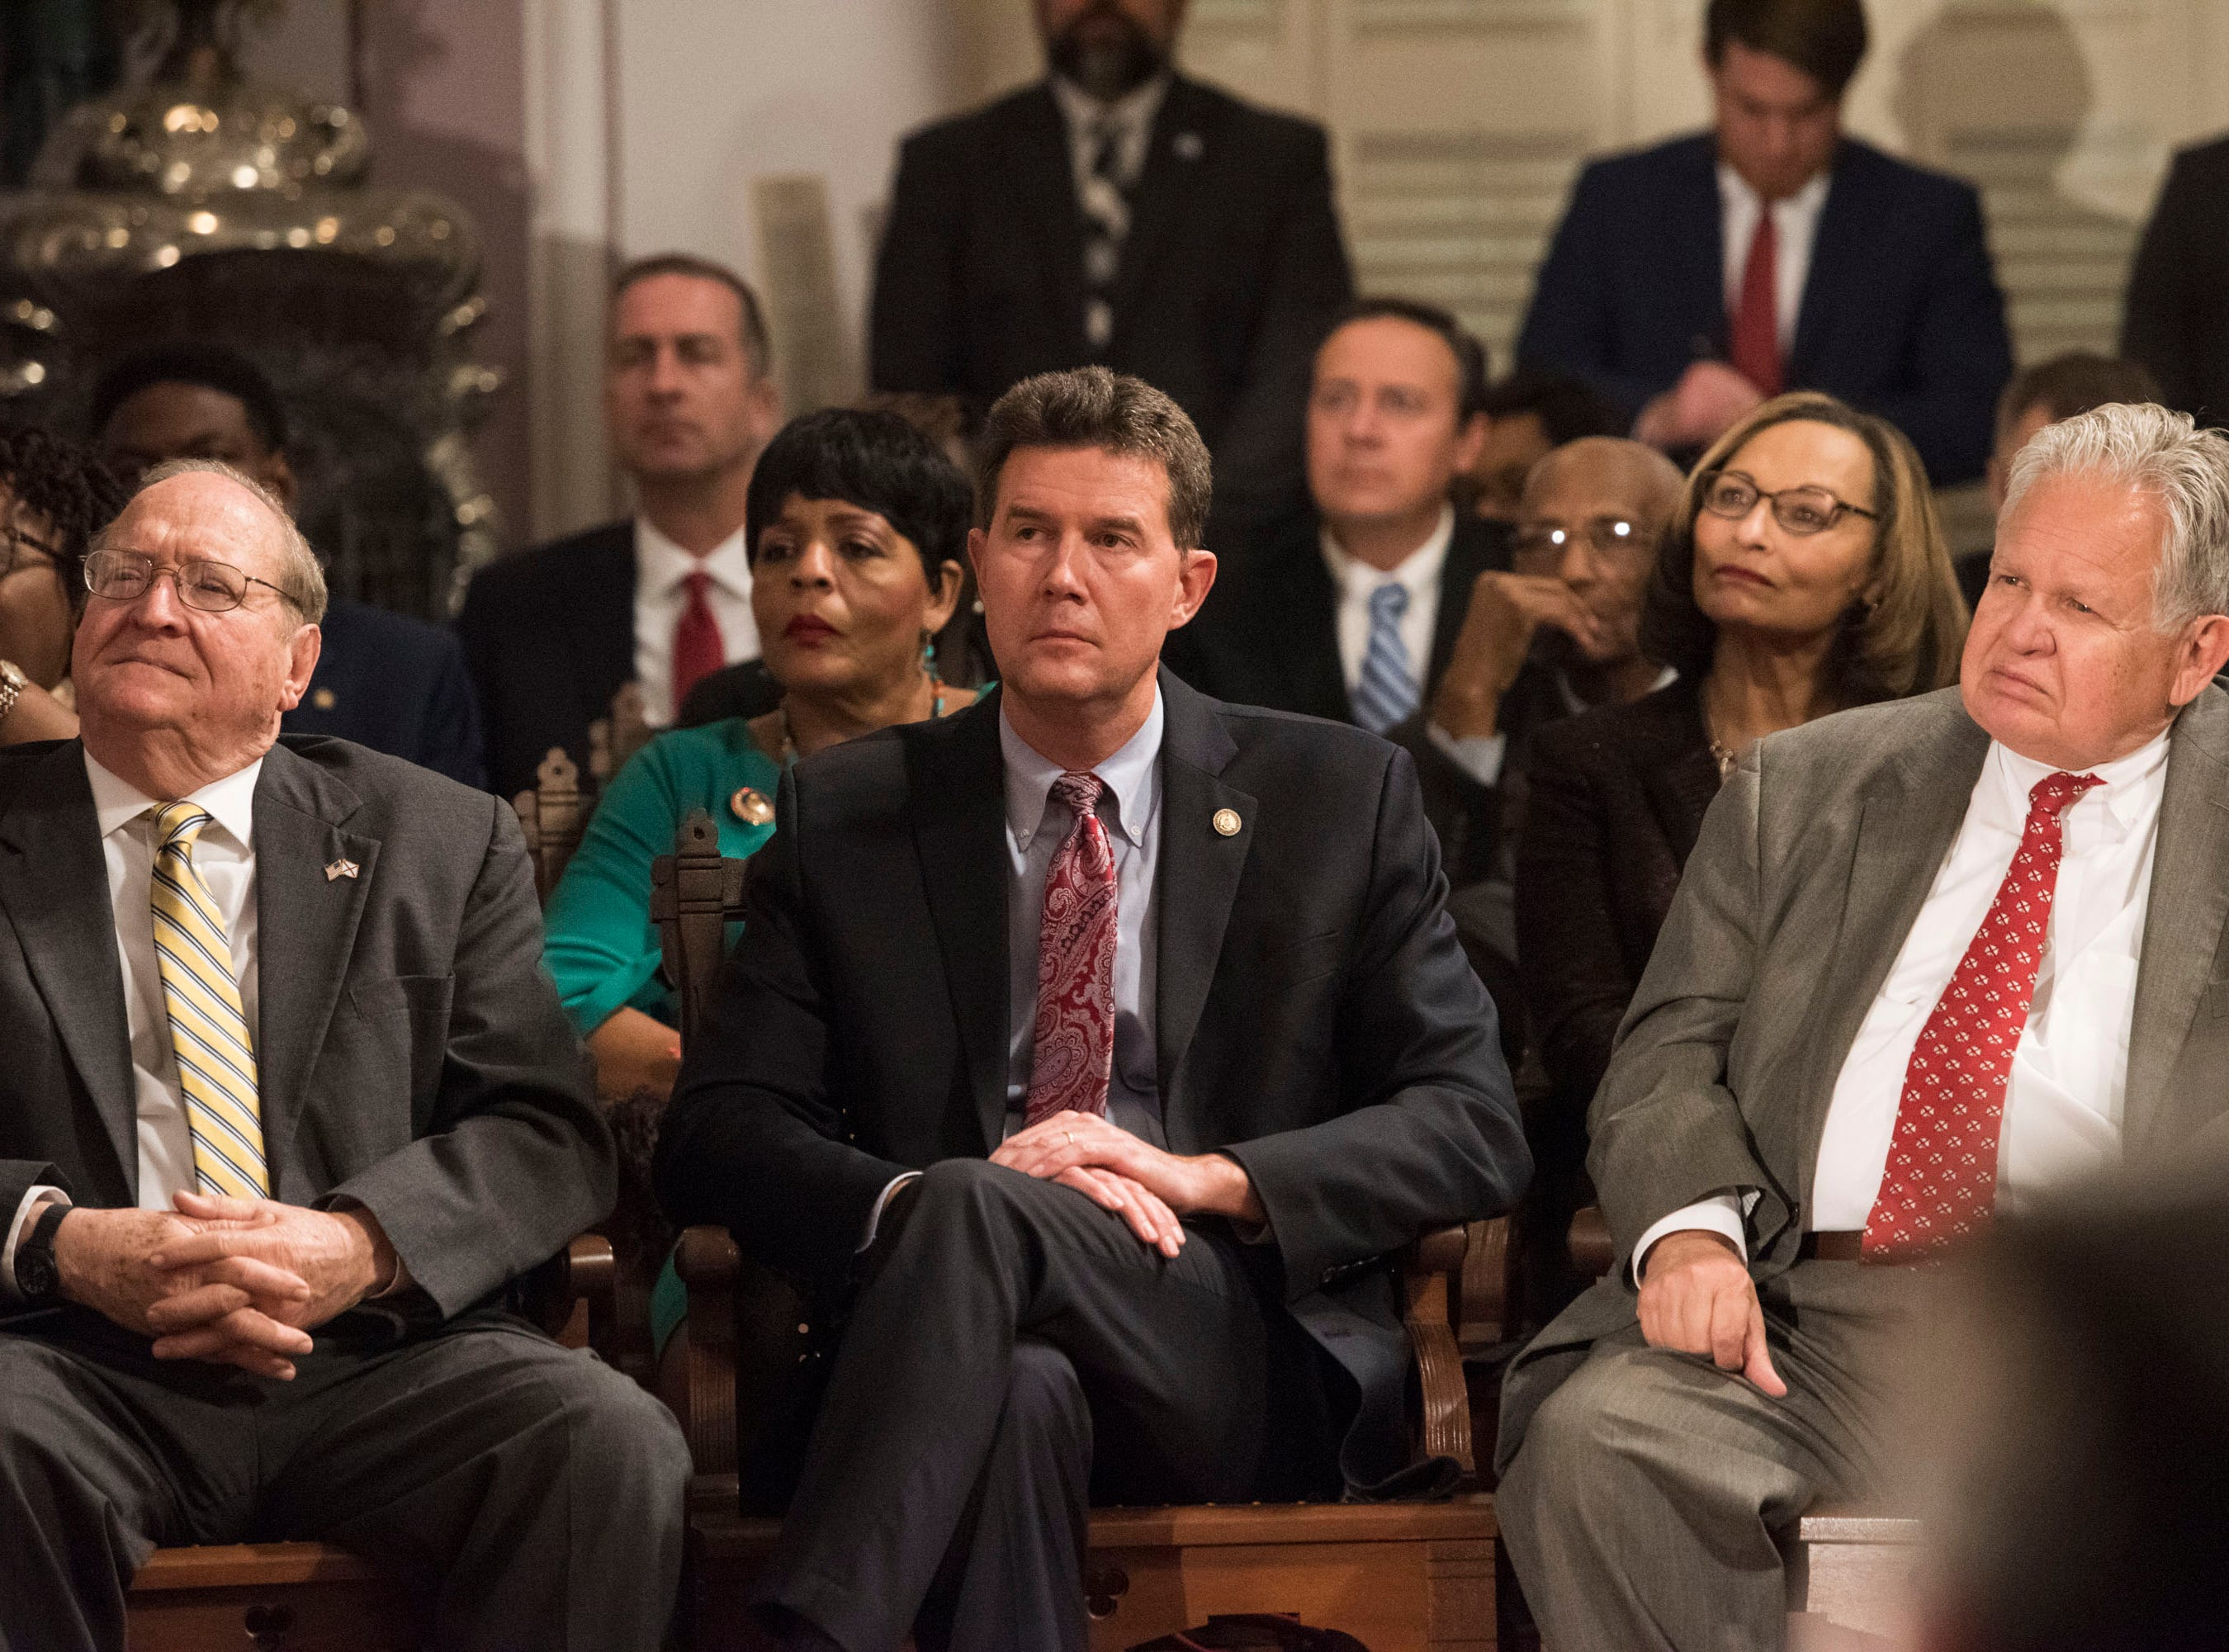 State Treasurer John McMillan, from left, Secretary of State John Merrill and State Auditor Jim Zeigler watch as Gov. Kay Ivey delivers the State of the State address inside the old house chambers at the Alabama State Capitol in Montgomery, Ala., on Tuesday, March 5, 2019.